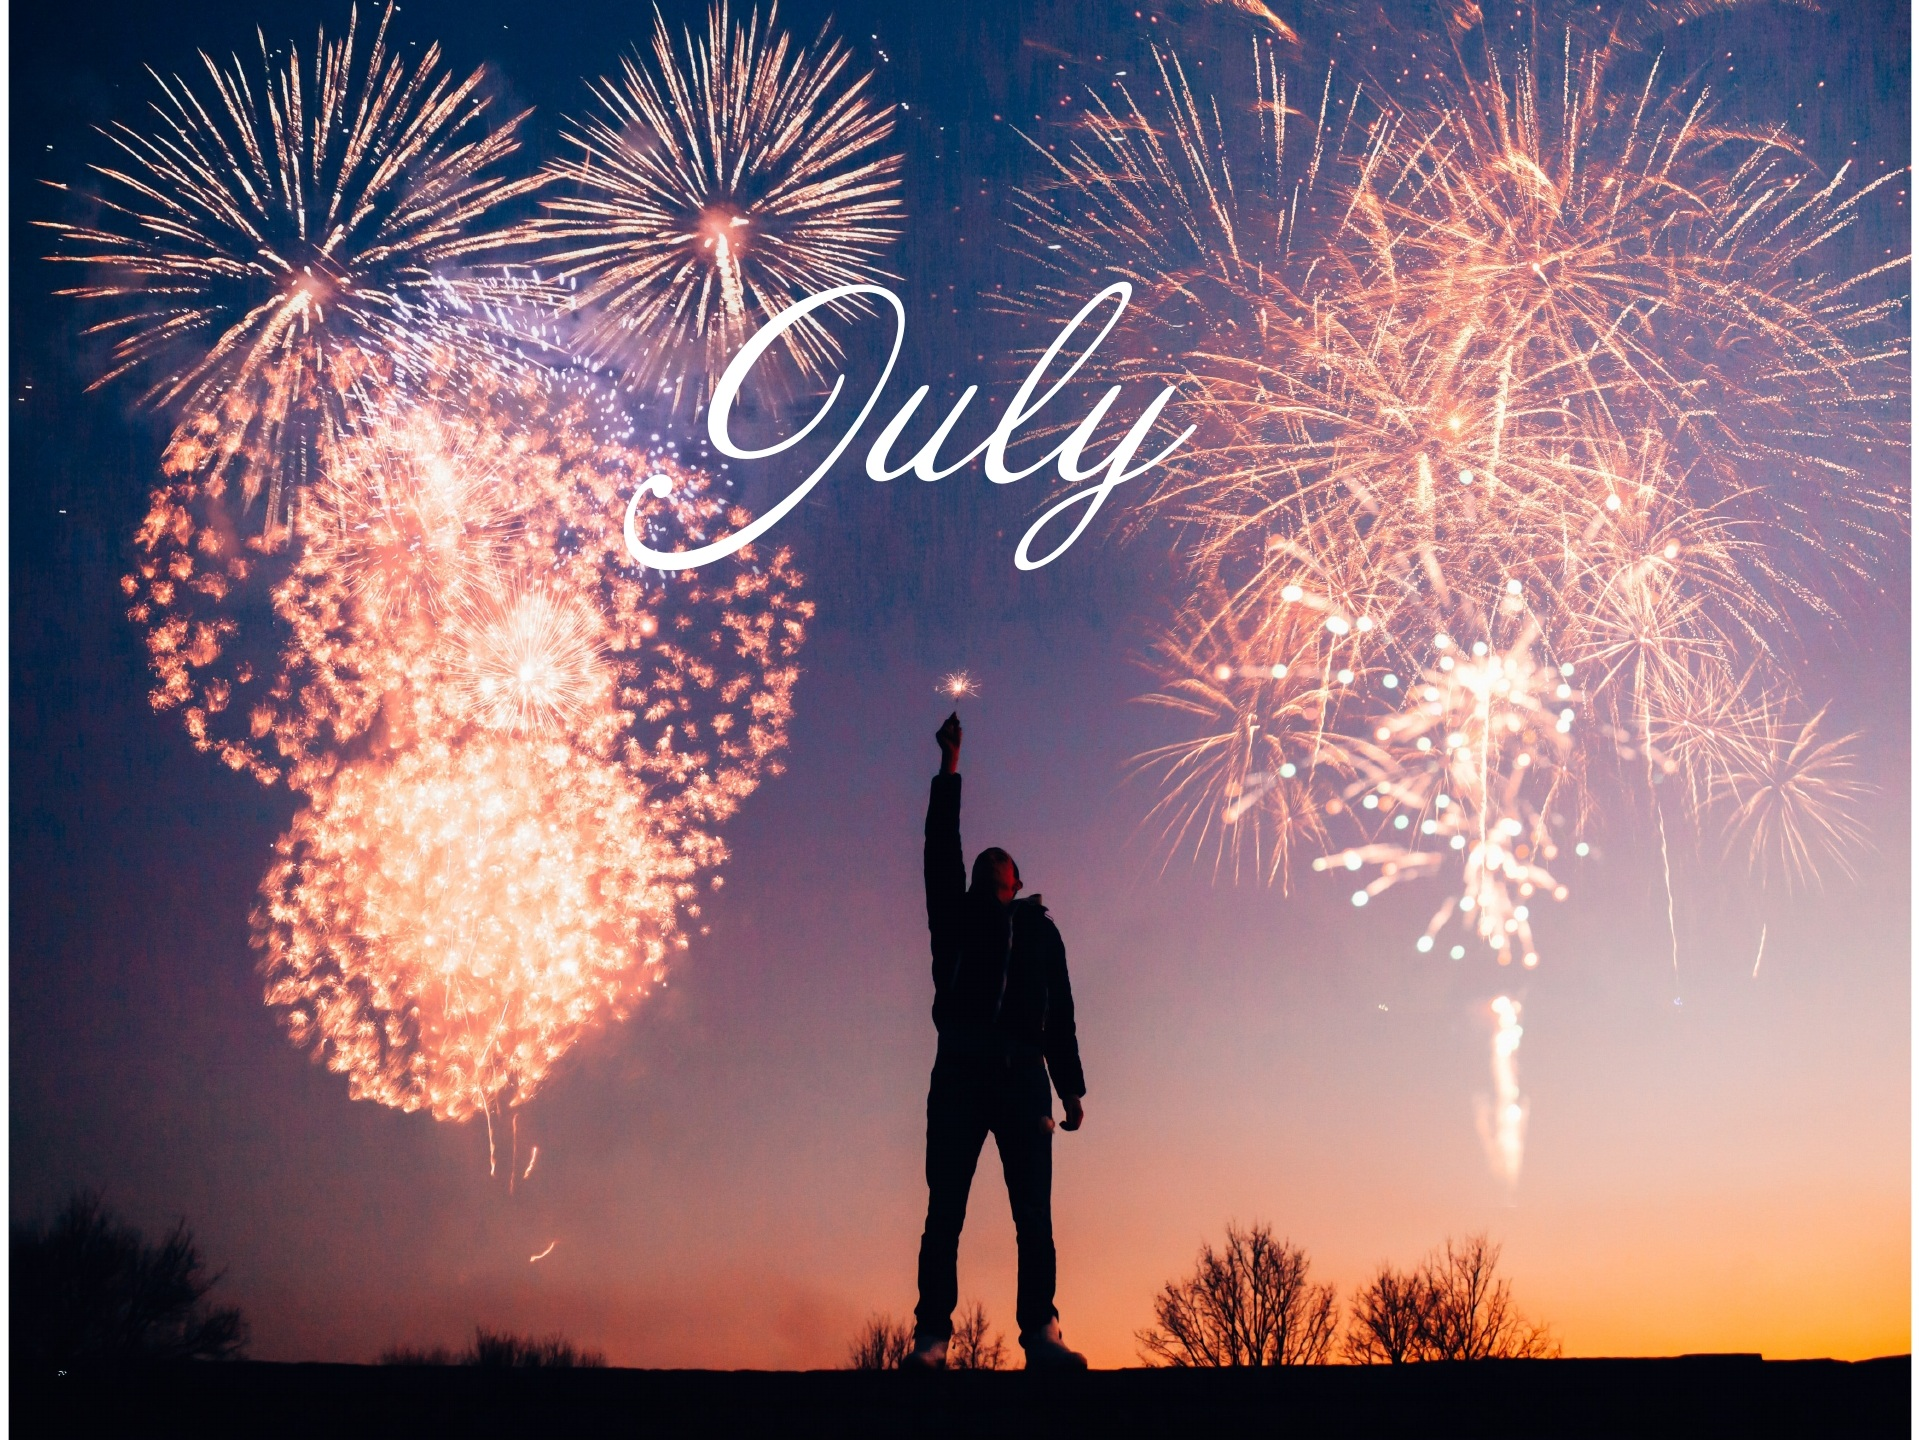 JULY+with+Text.jpg